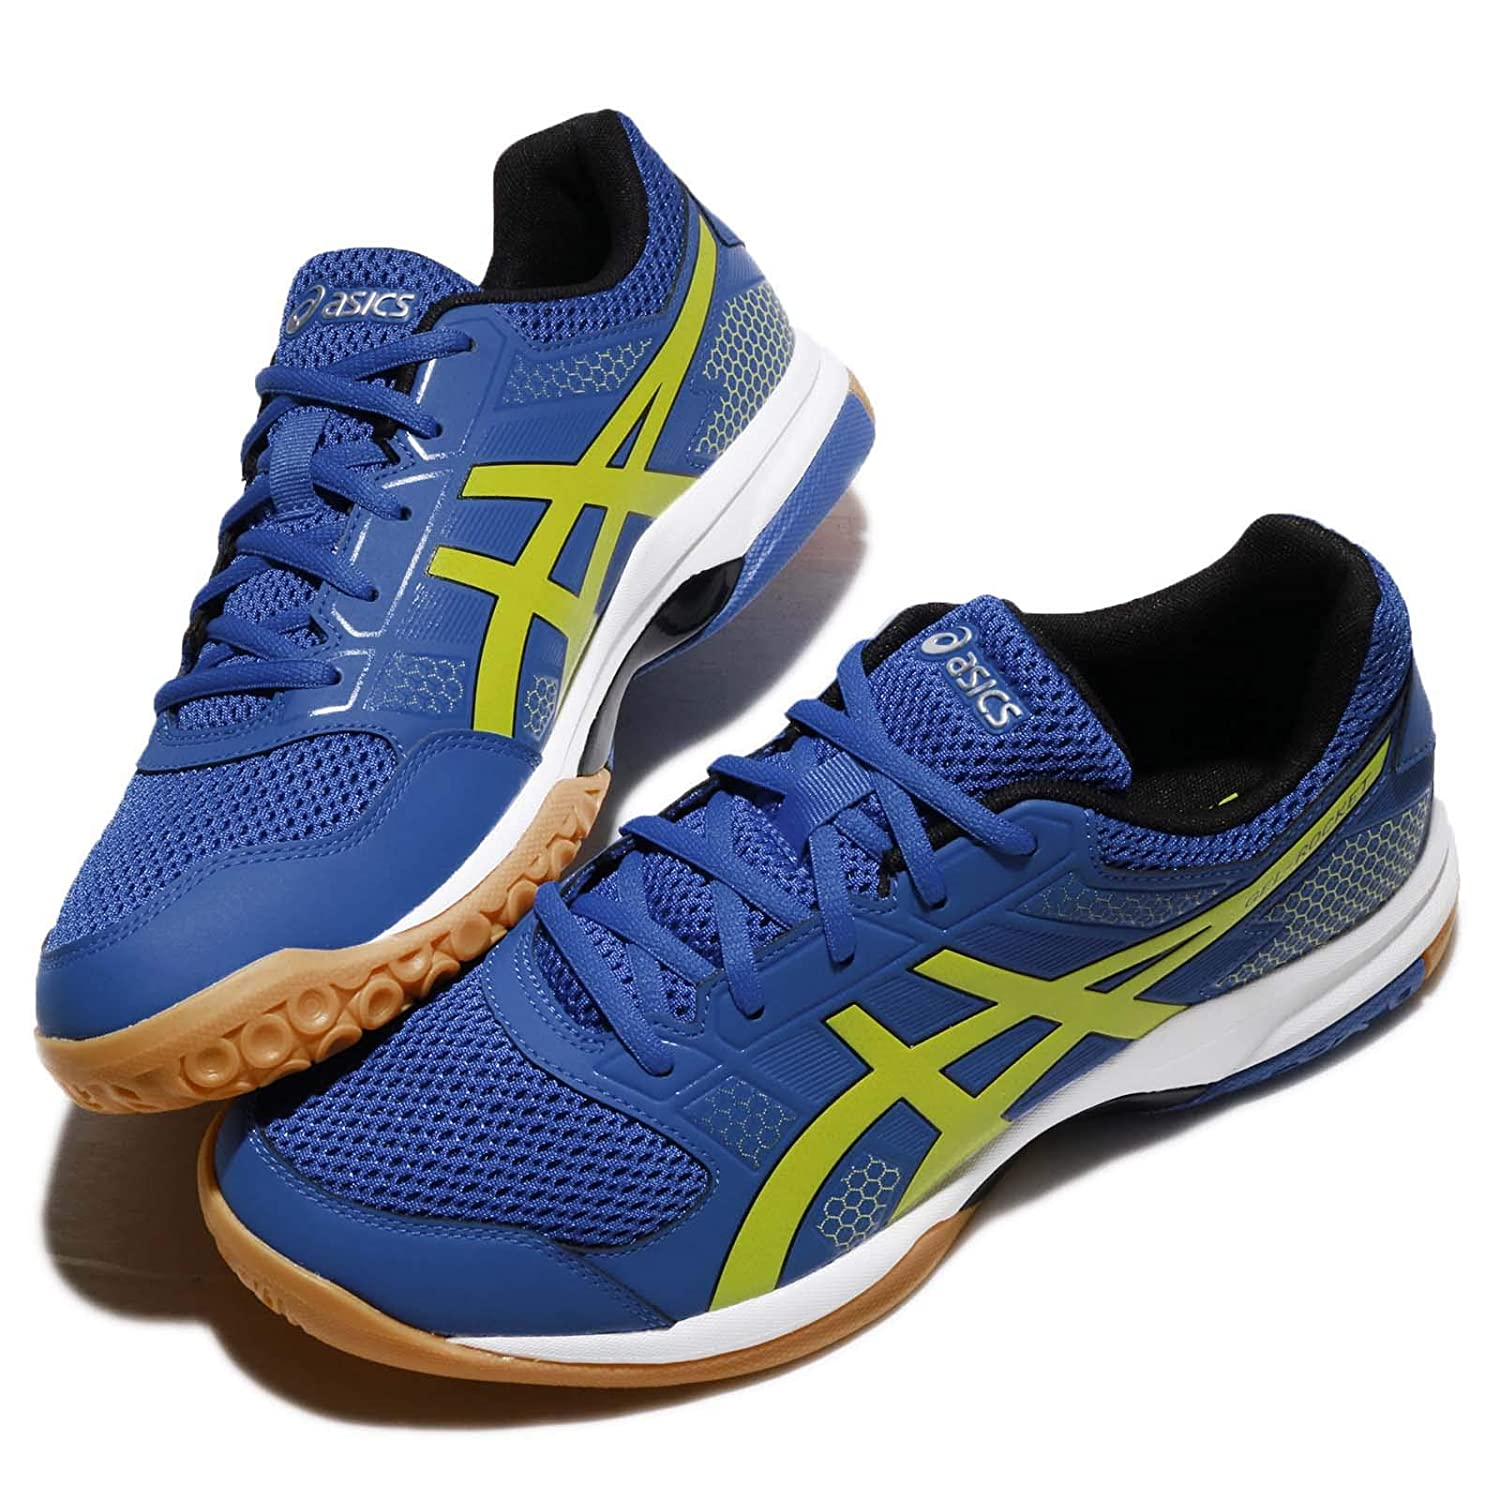 8b919058ea4d9 ASICS Gel Rocket 8 - Mens Indoor Court Shoes - Imperial Sulphur Spring  Silver - All Court Shoes for Badminton Volleyball Squash (UK 8)  Buy Online  at Low ...